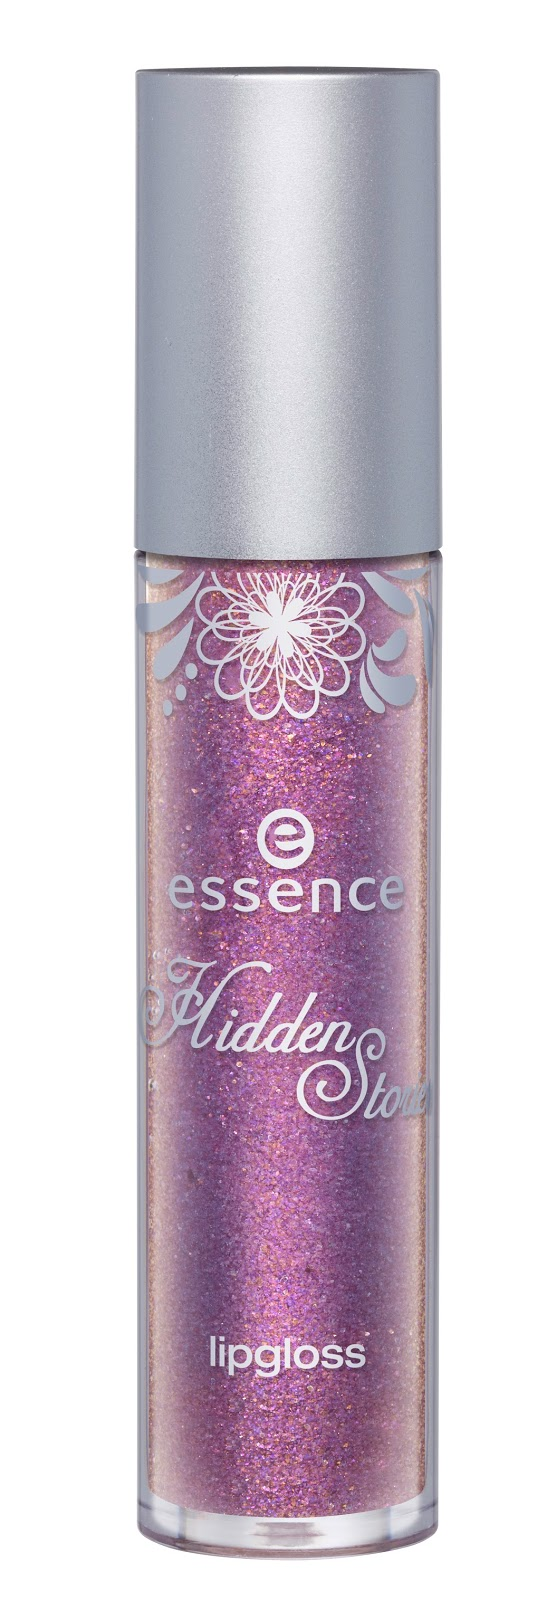 Essence Hidden Stories